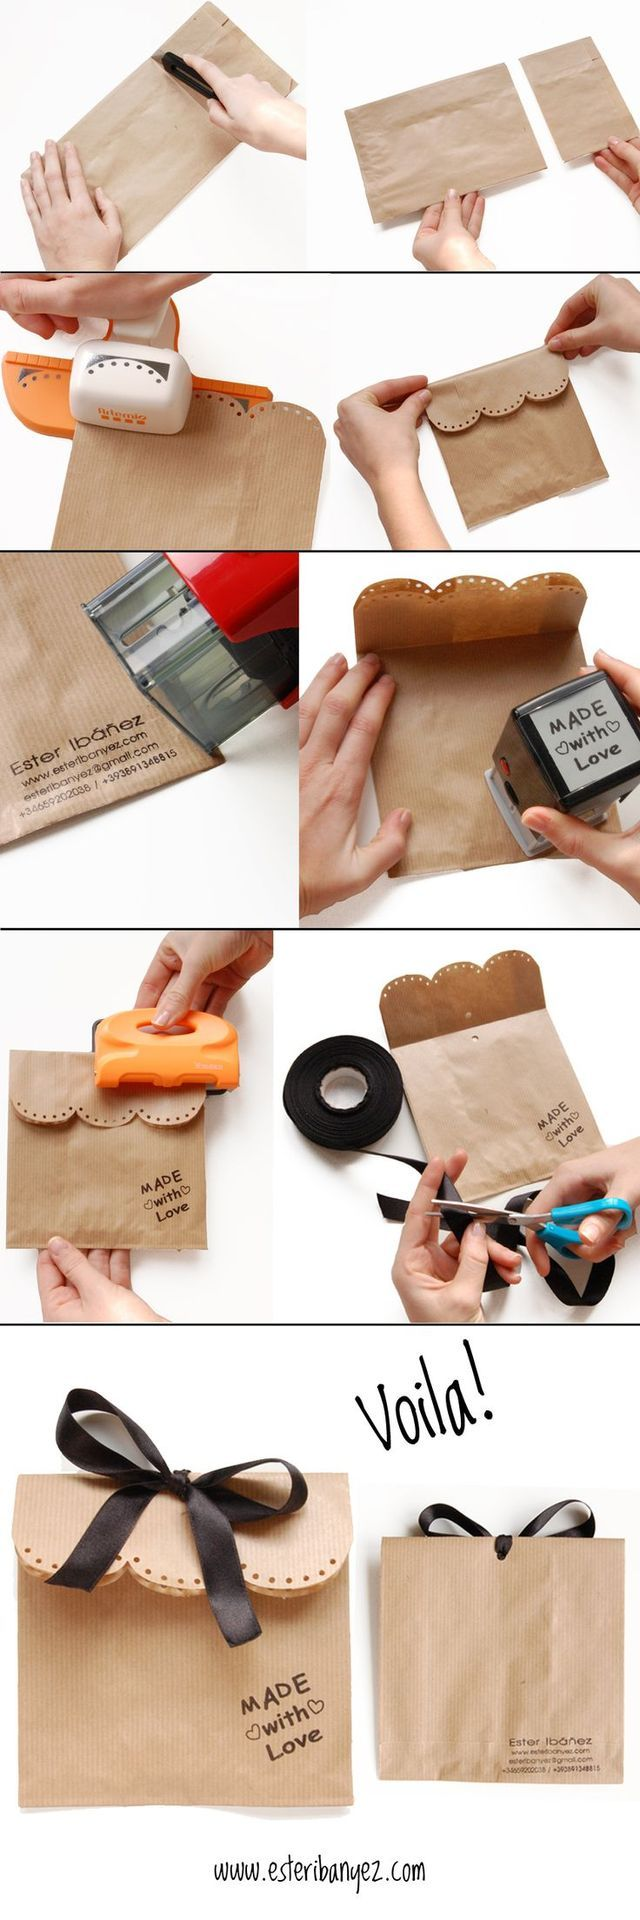 100+ of the Best DIY Gifts Ever                                                                                                                                                                                 More